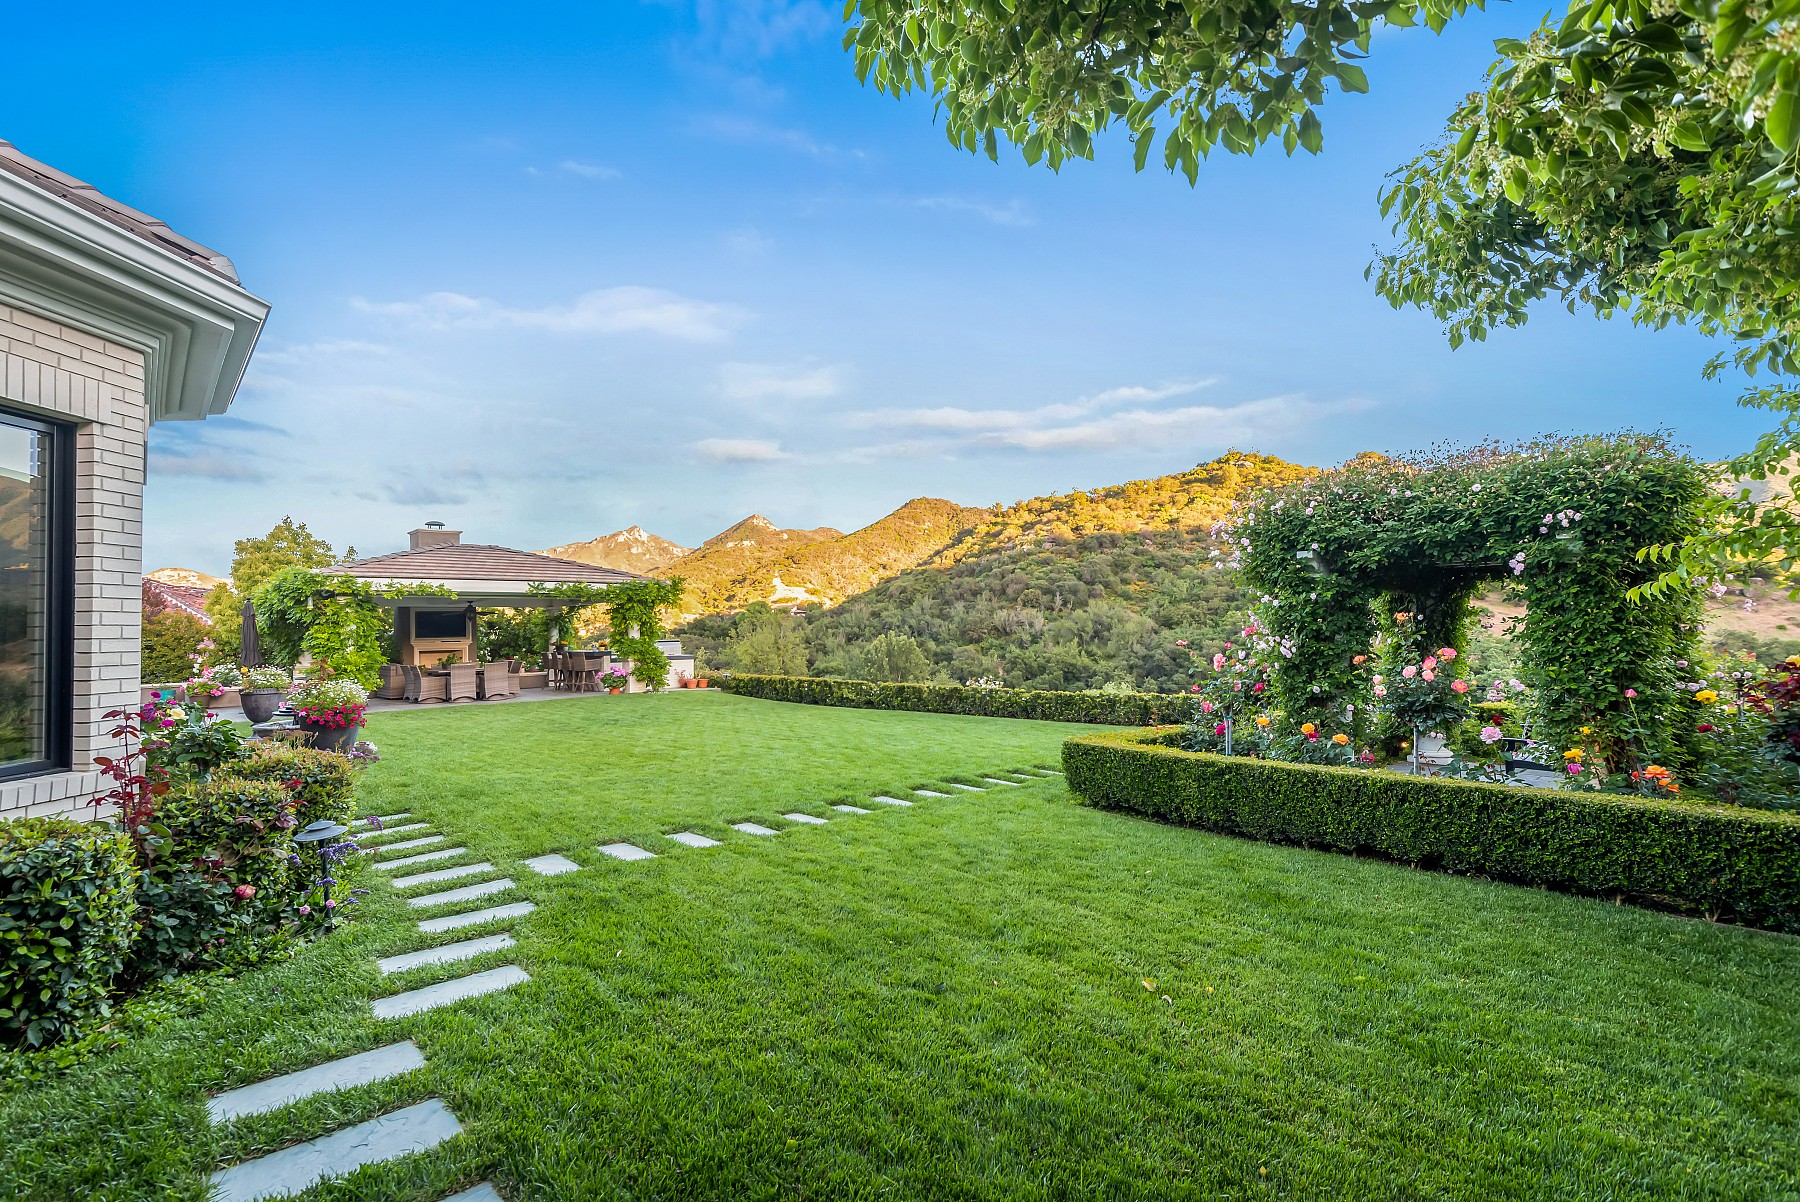 138 Williamsburg Way, Thousand Oaks, CA 91361